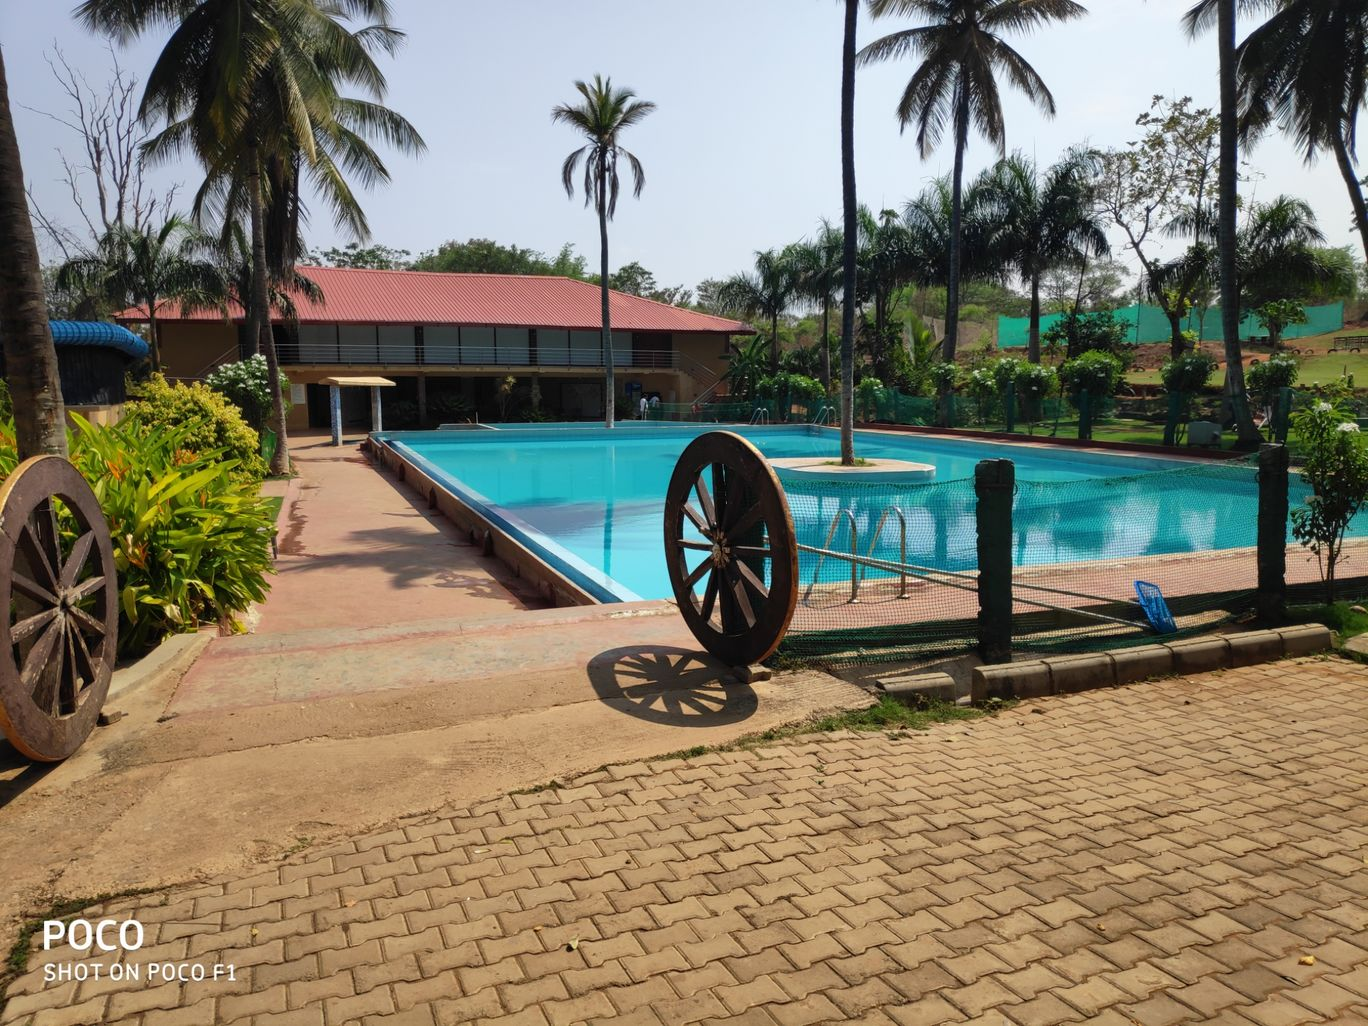 Photo of Elim Resorts By chethan gowda